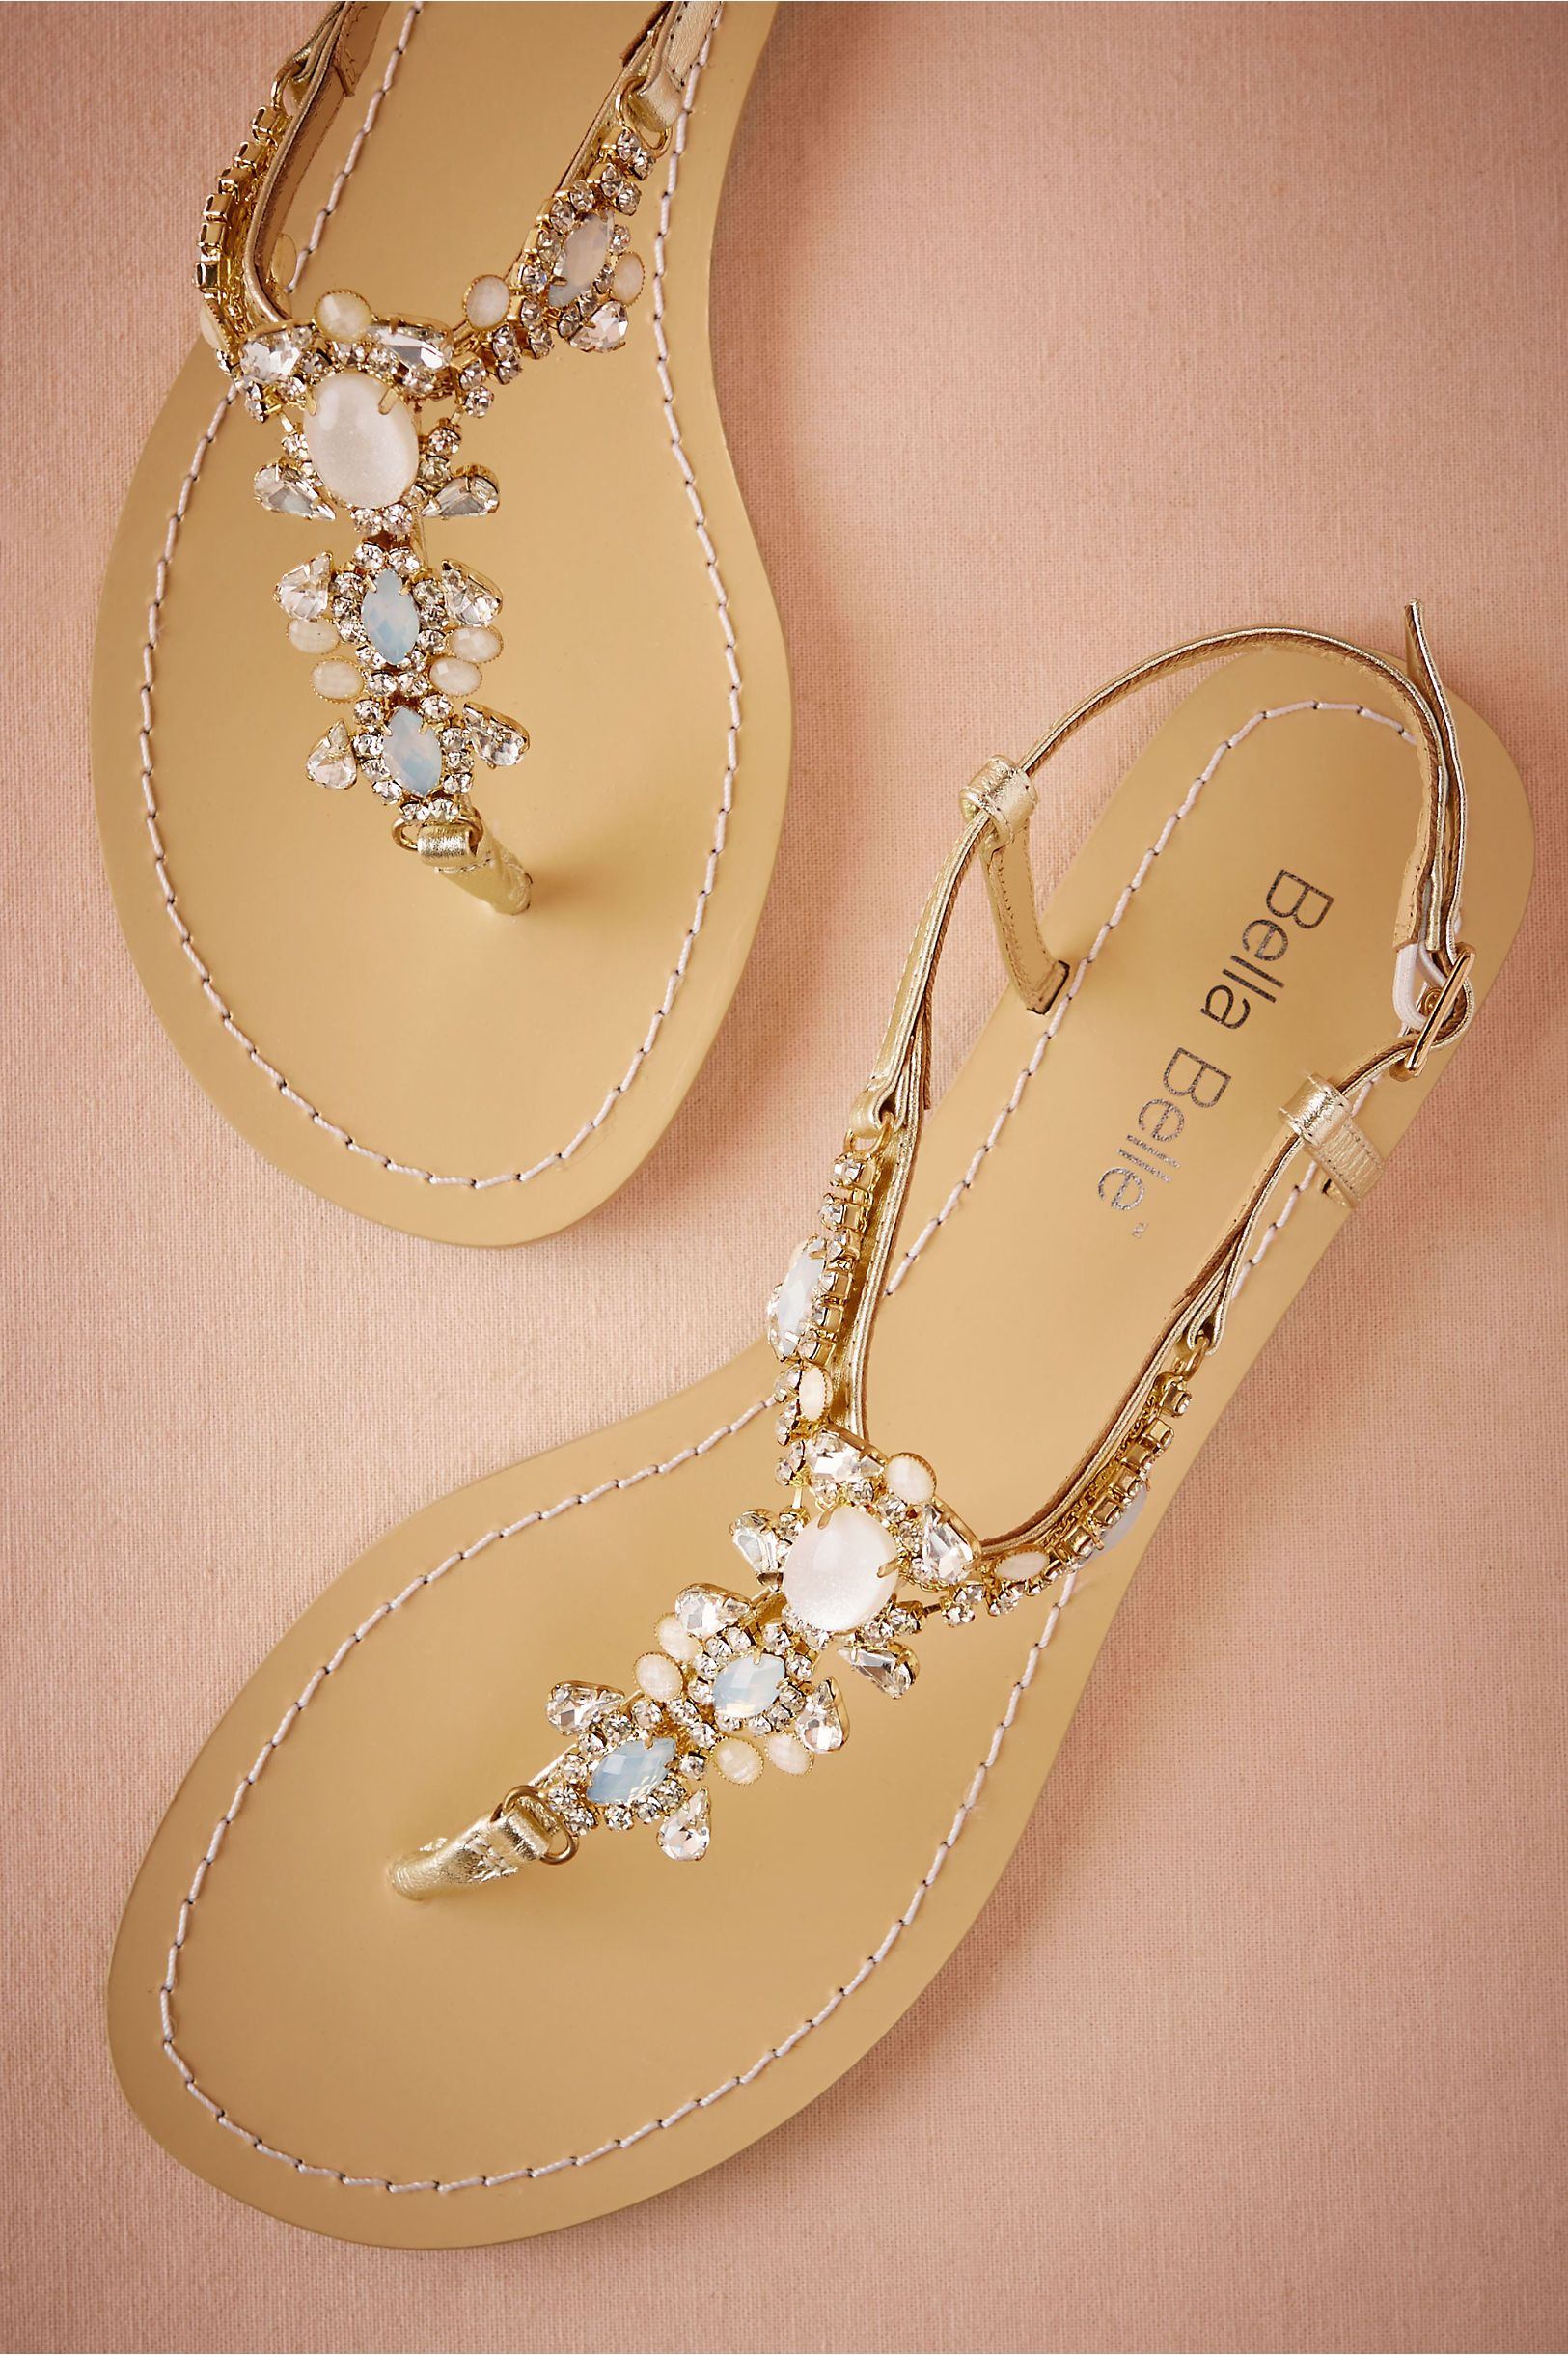 BHLDN Tulum Sandals In Shoes Accessories View All